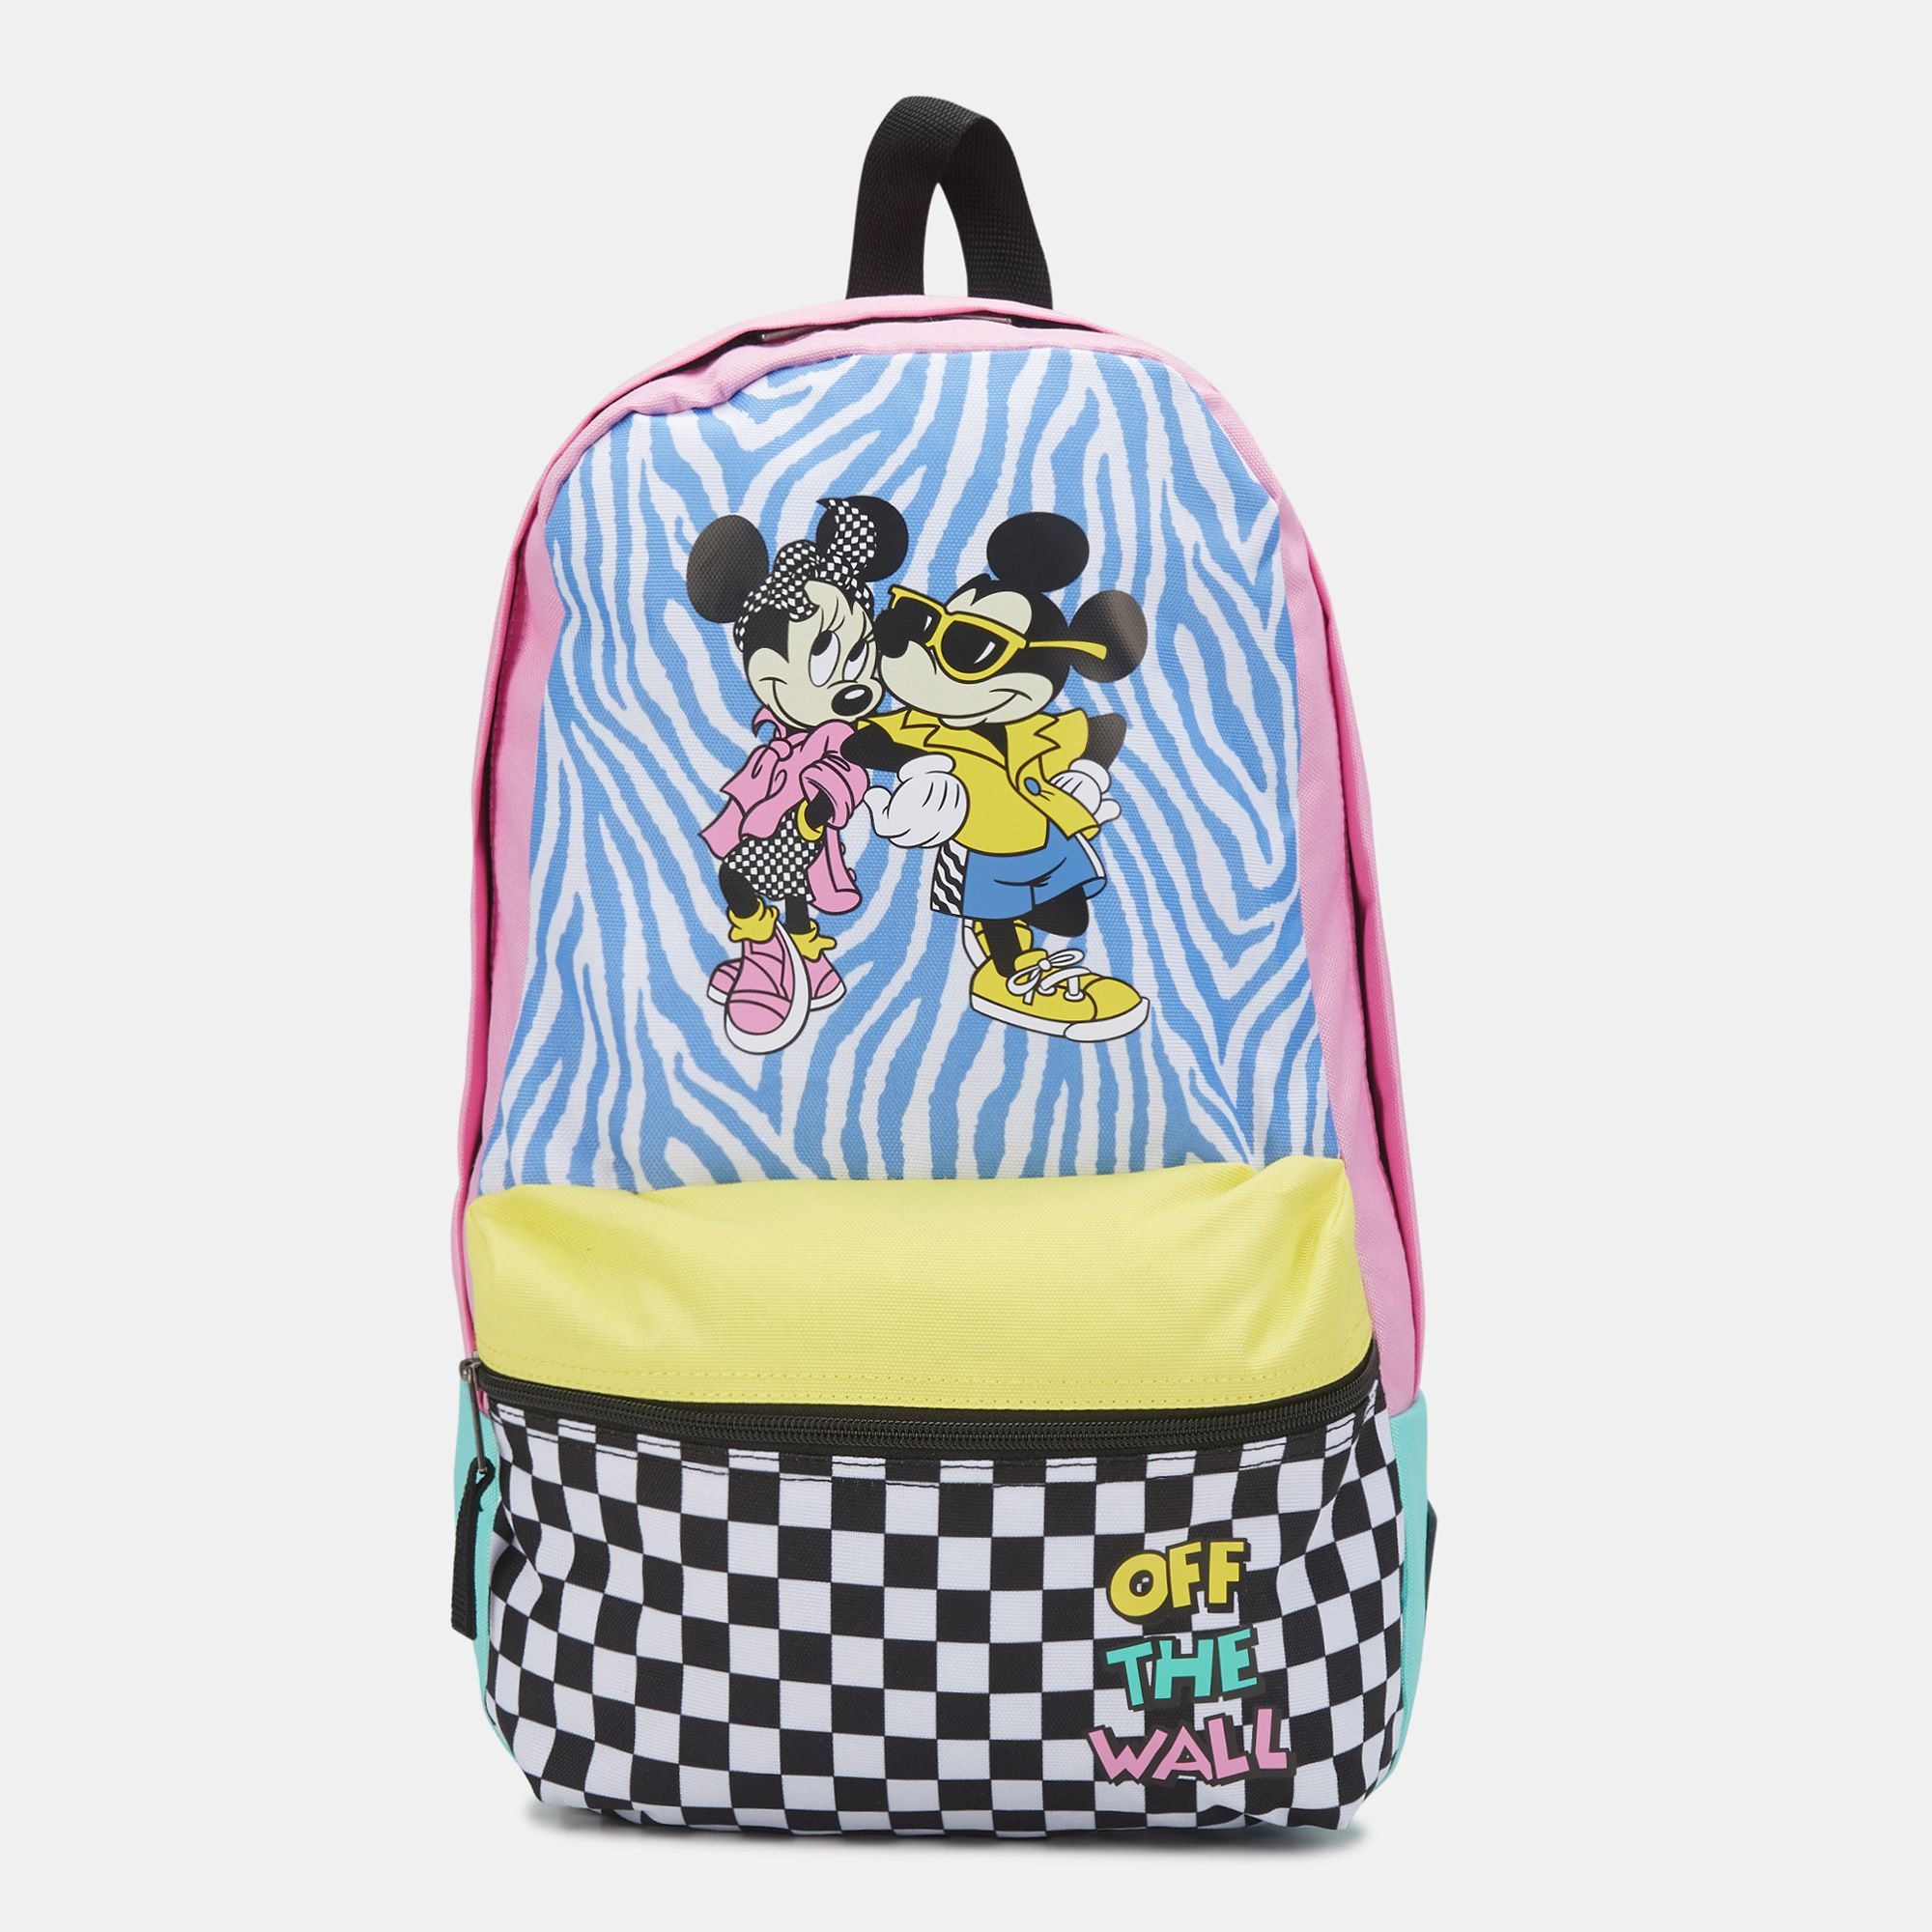 63feeac1388 Vans x Disney Mickey Mouse Calico Backpack - White